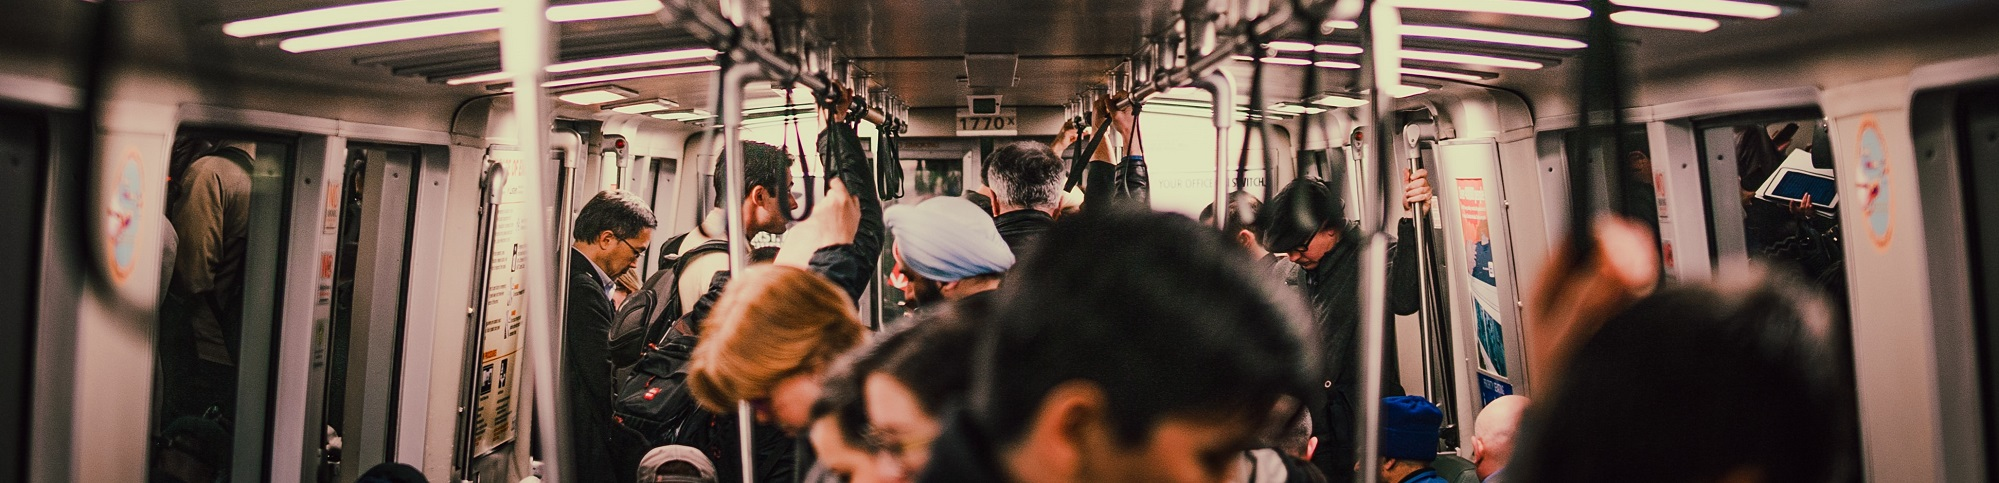 Staying safe on your daily commute to work